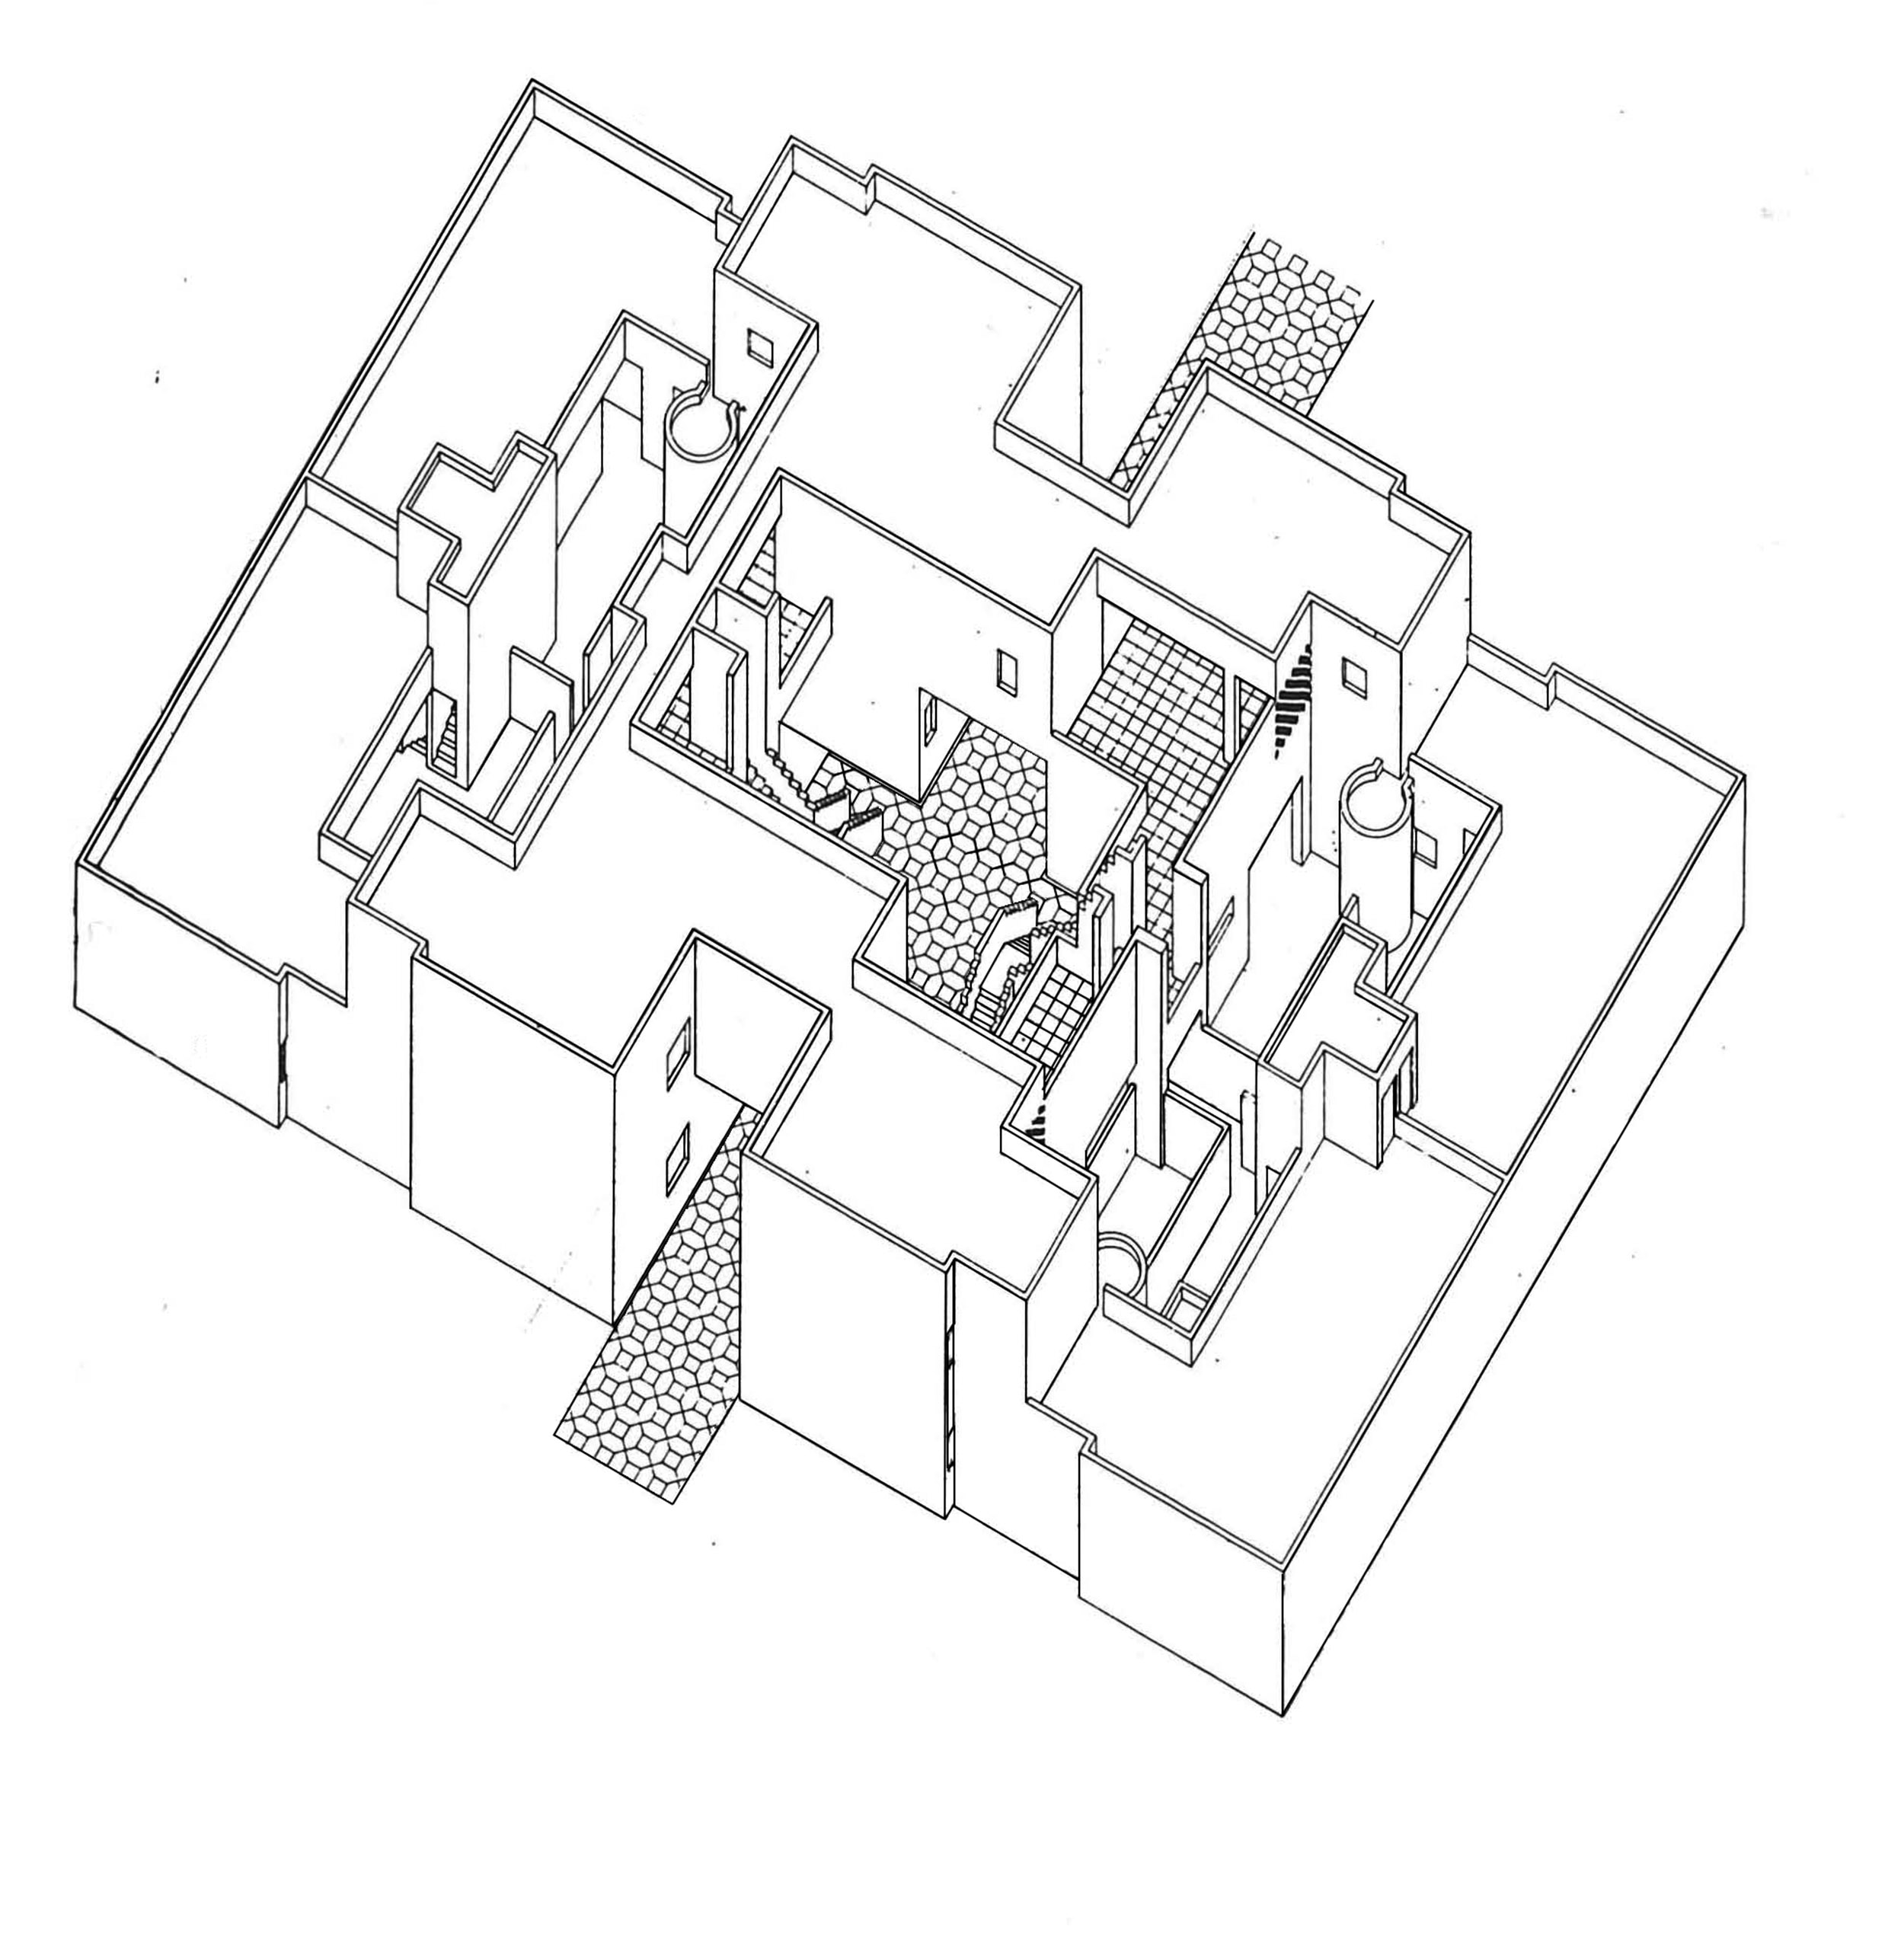 Figure 4. Axonometric of cluster of aprtments and courtyards. Authors after Kamran Diba and DAZ Architects. 2015.